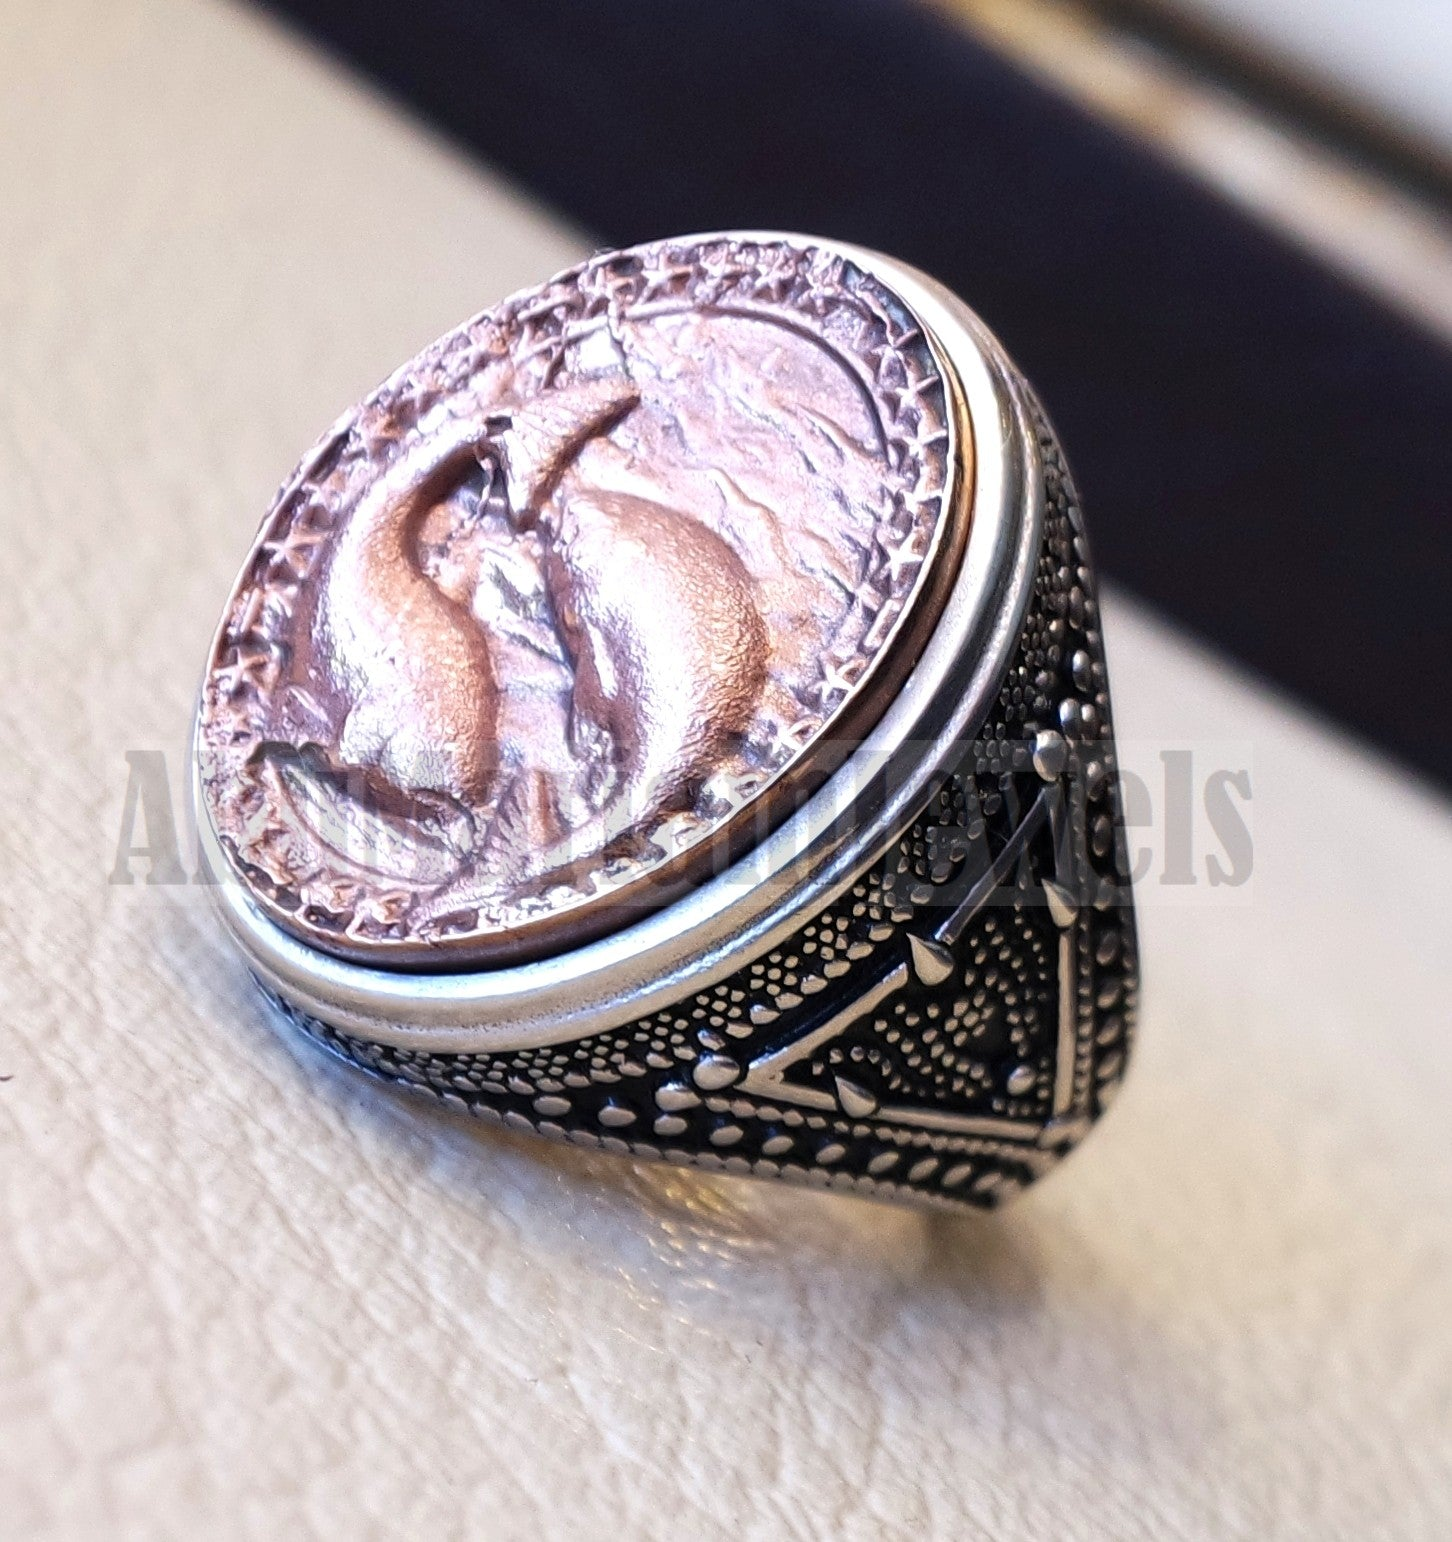 Horoscopes zodiac sign Pisces sterling silver 925 and antique bronze huge men ring all sizes men jewelry gift that bring luck fast shipping